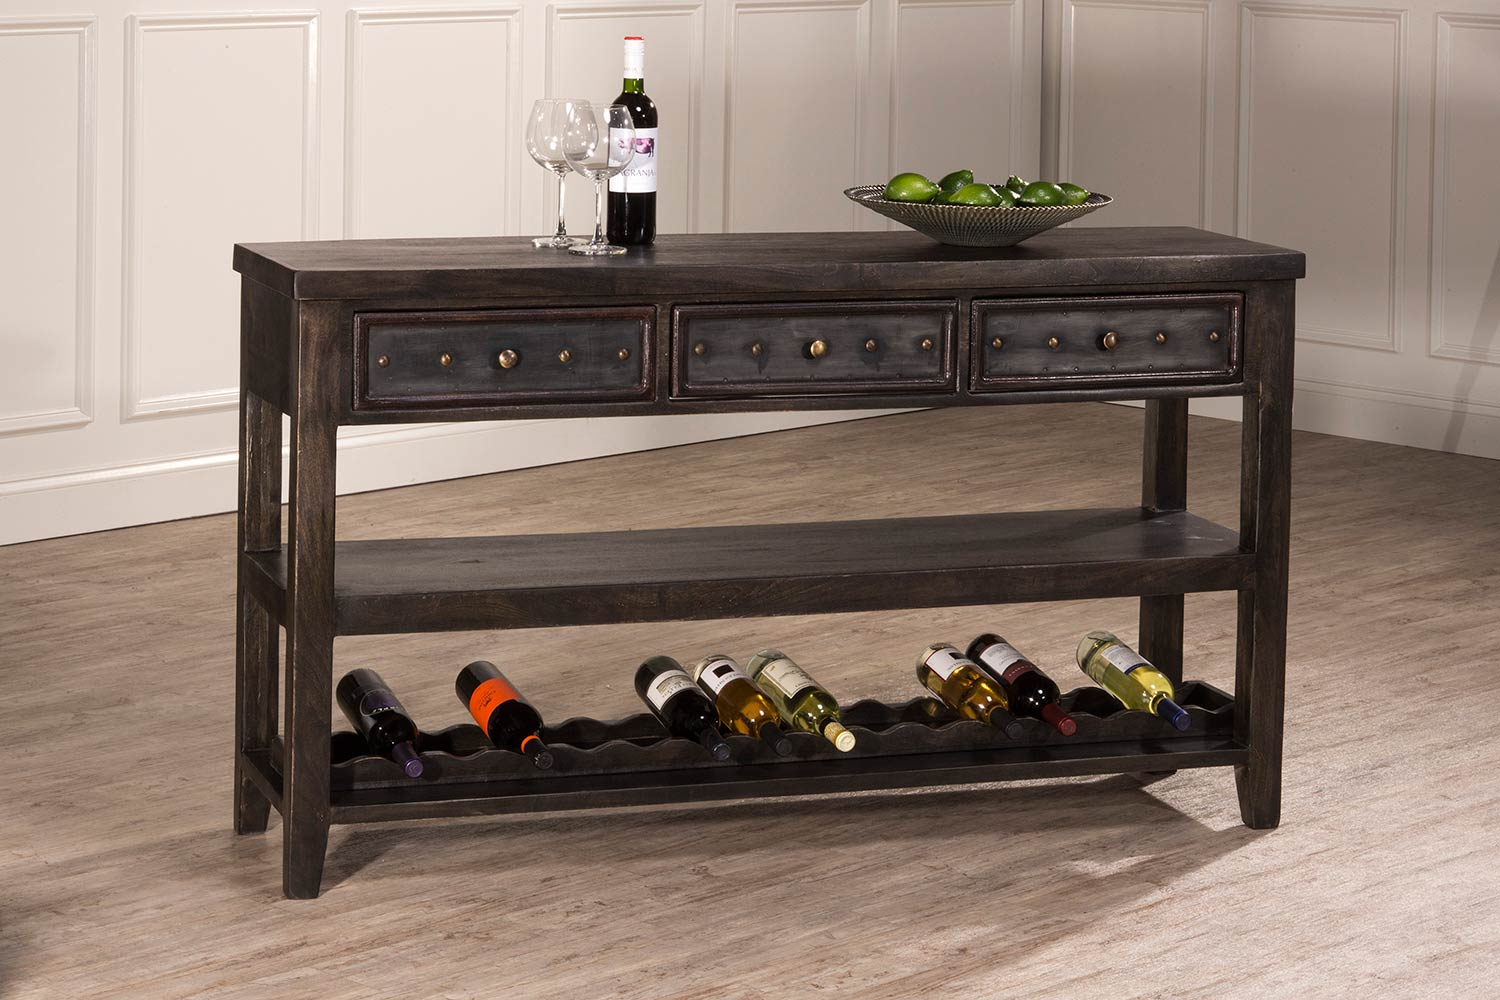 Hillsdale Bolt Sofa Table With Wine Rack - Dark Gray